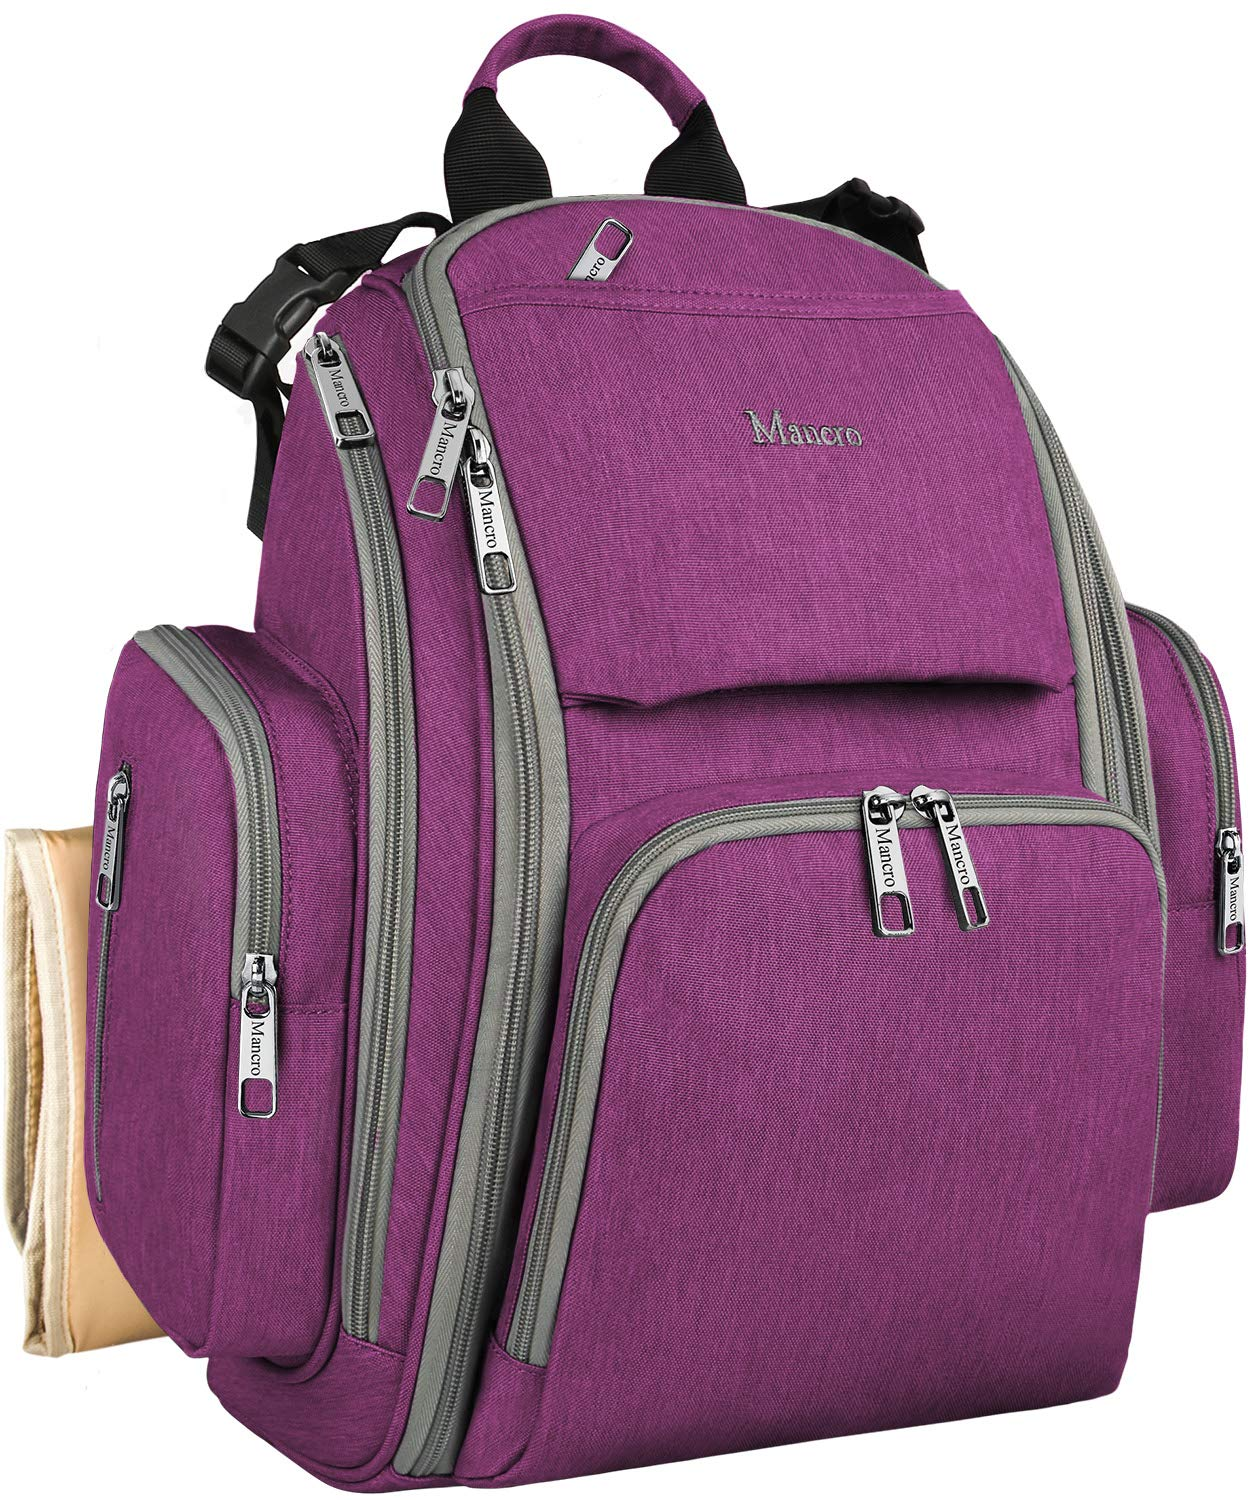 Diaper Backpack, Baby Diaper Bags Nappy Bag for Dad and Mom, Unisex Travel Maternity Hands Free Outdoor Back Packs with Stroller Straps, Changing Mat, Insulated Pockets, Water Resistant, Purple